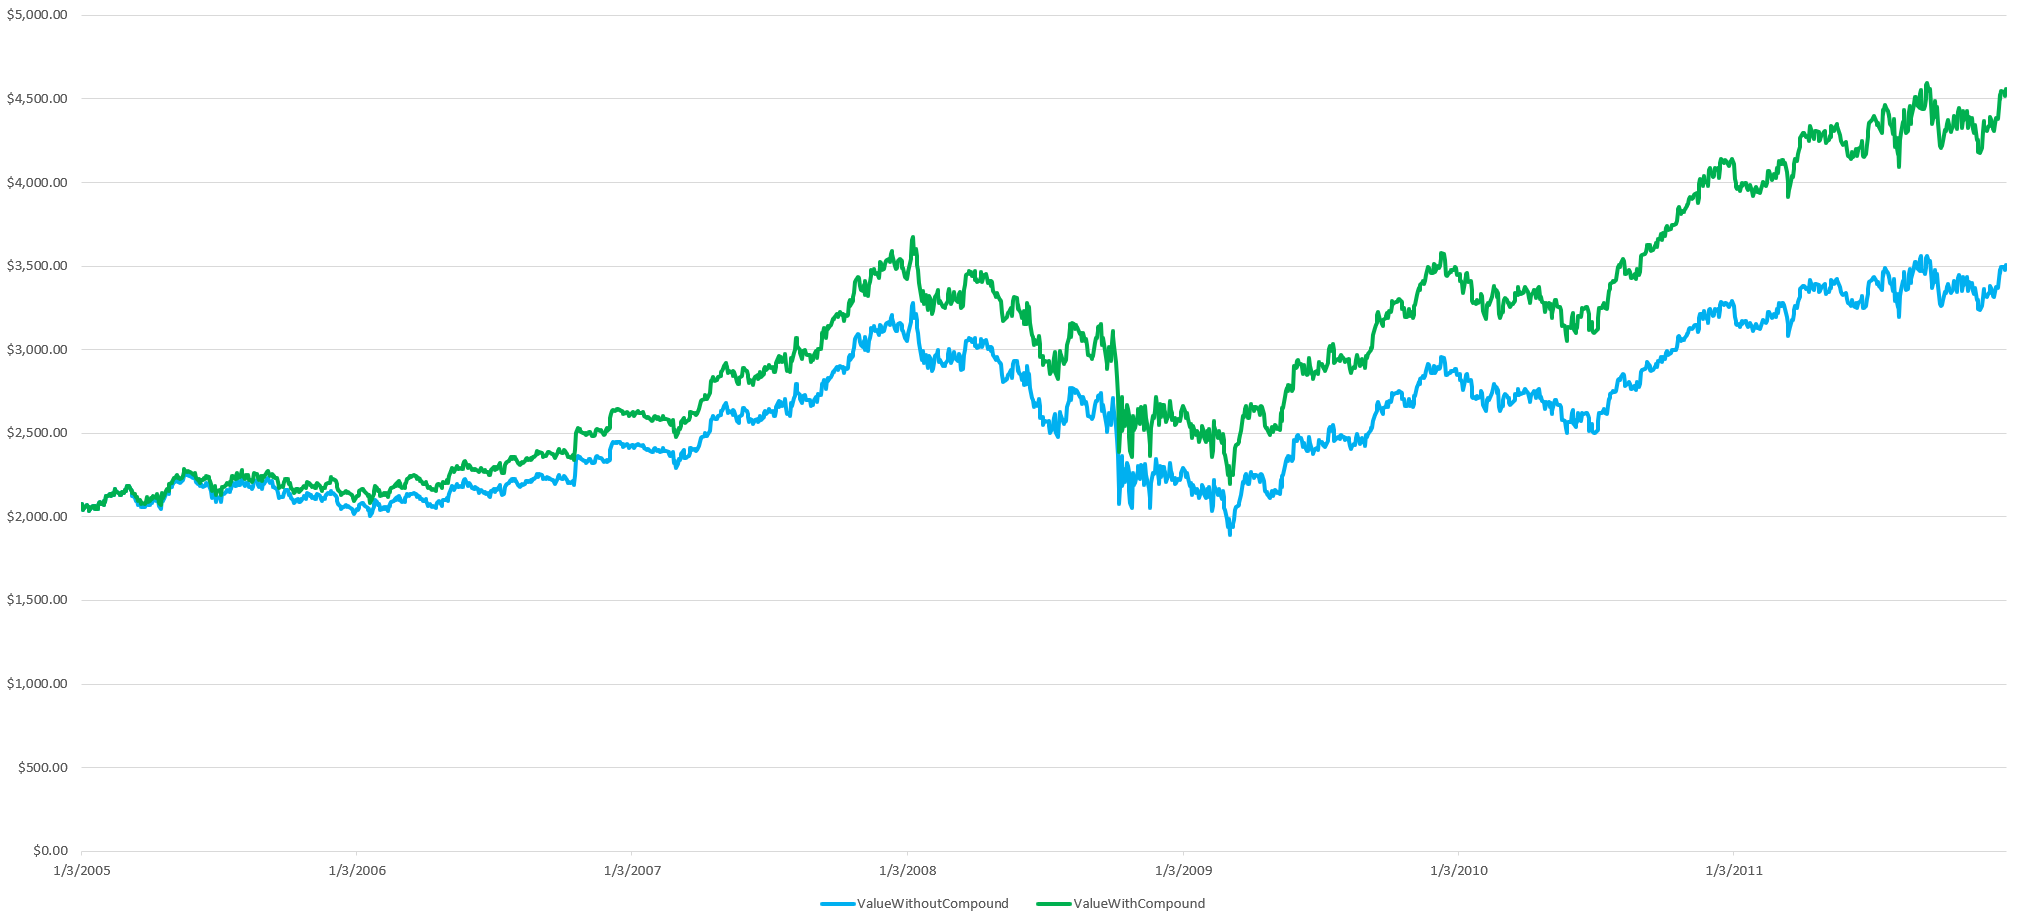 Portfolio value with and without compounding effect